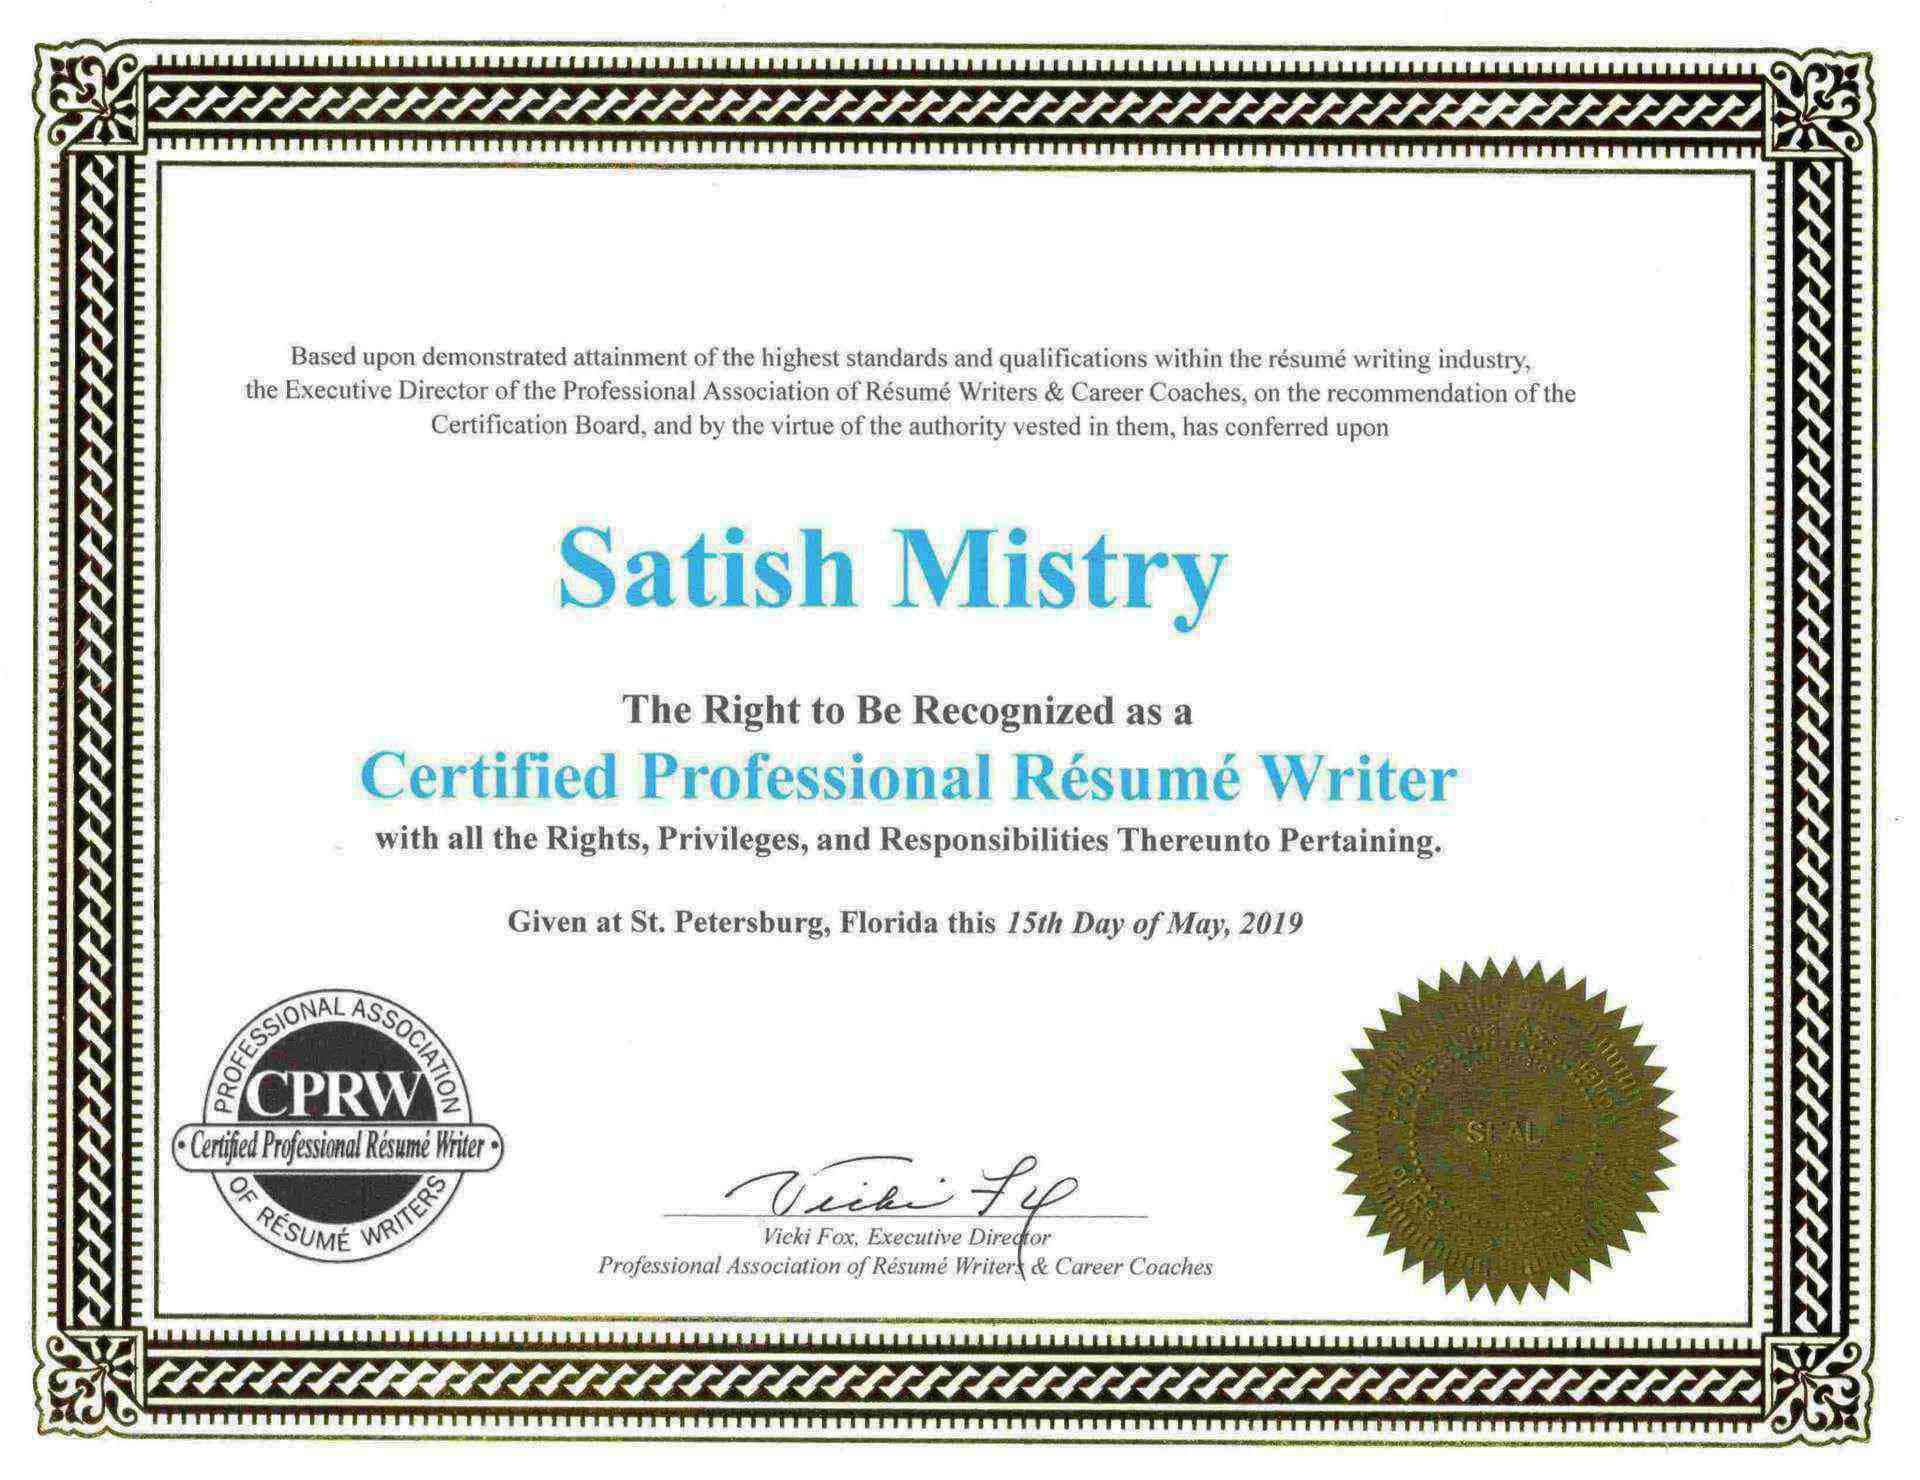 CPRW Certificate Certified Professional Resume Writer